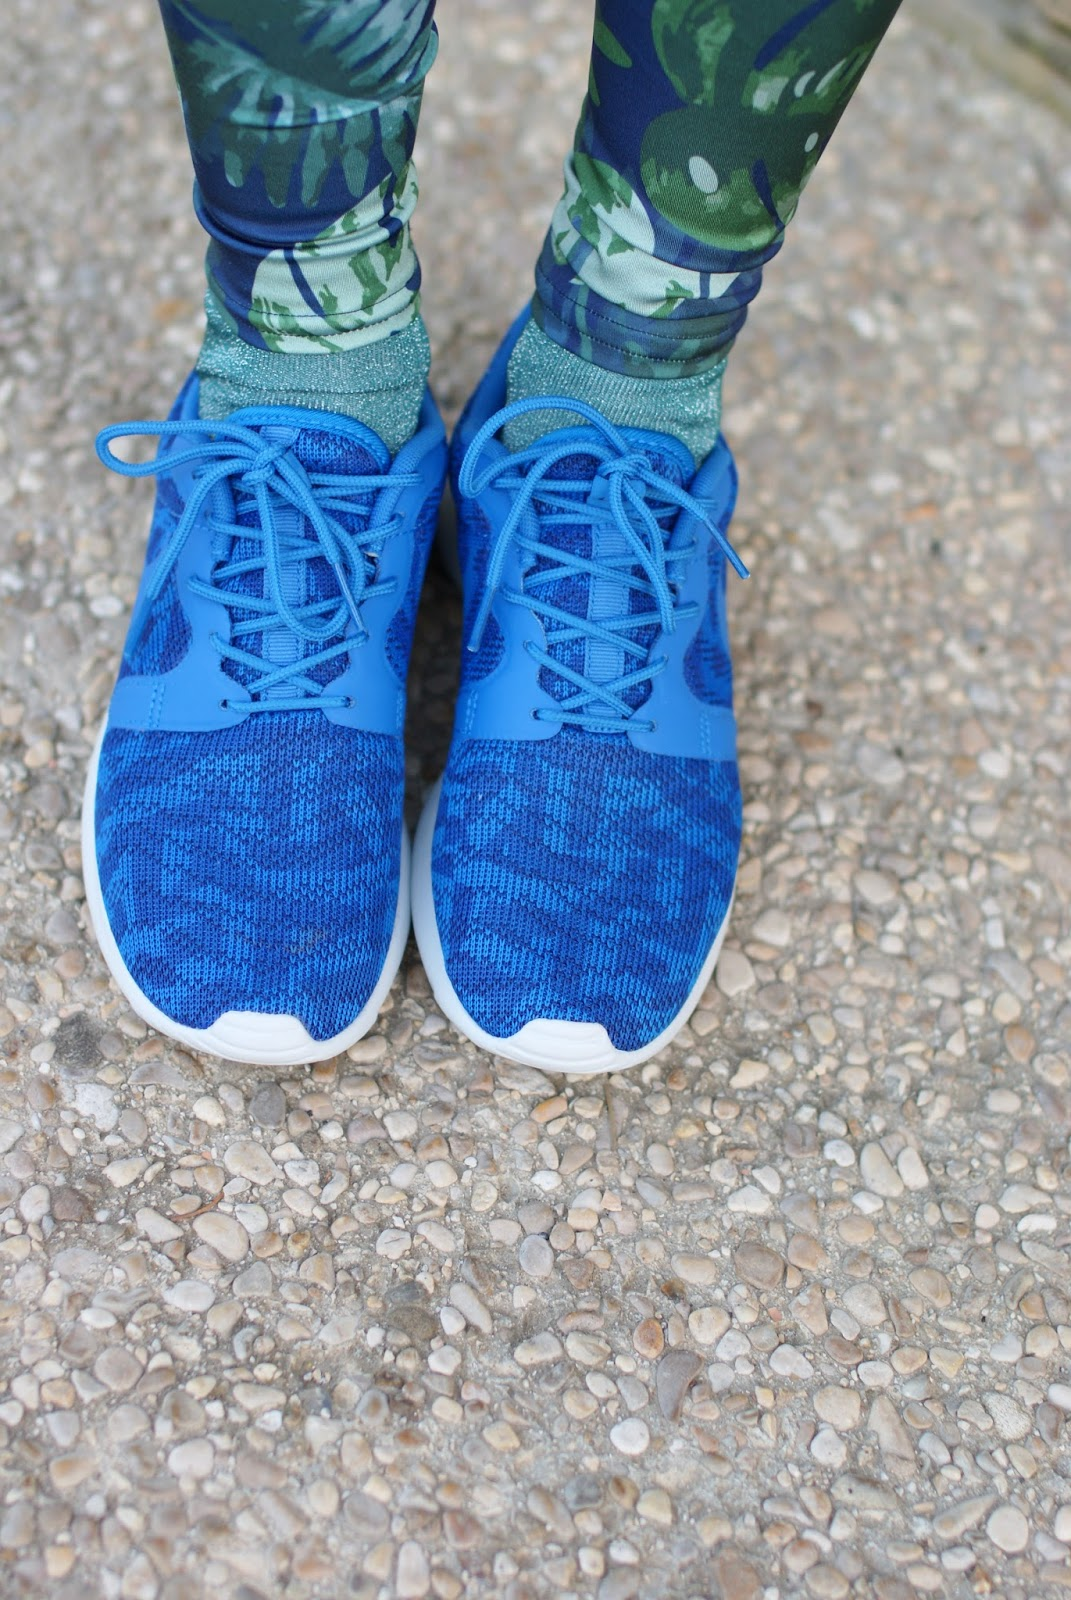 Blue Nike Roshe Run sneakers on Fashion and Cookies fashion blog, fashion blogger style